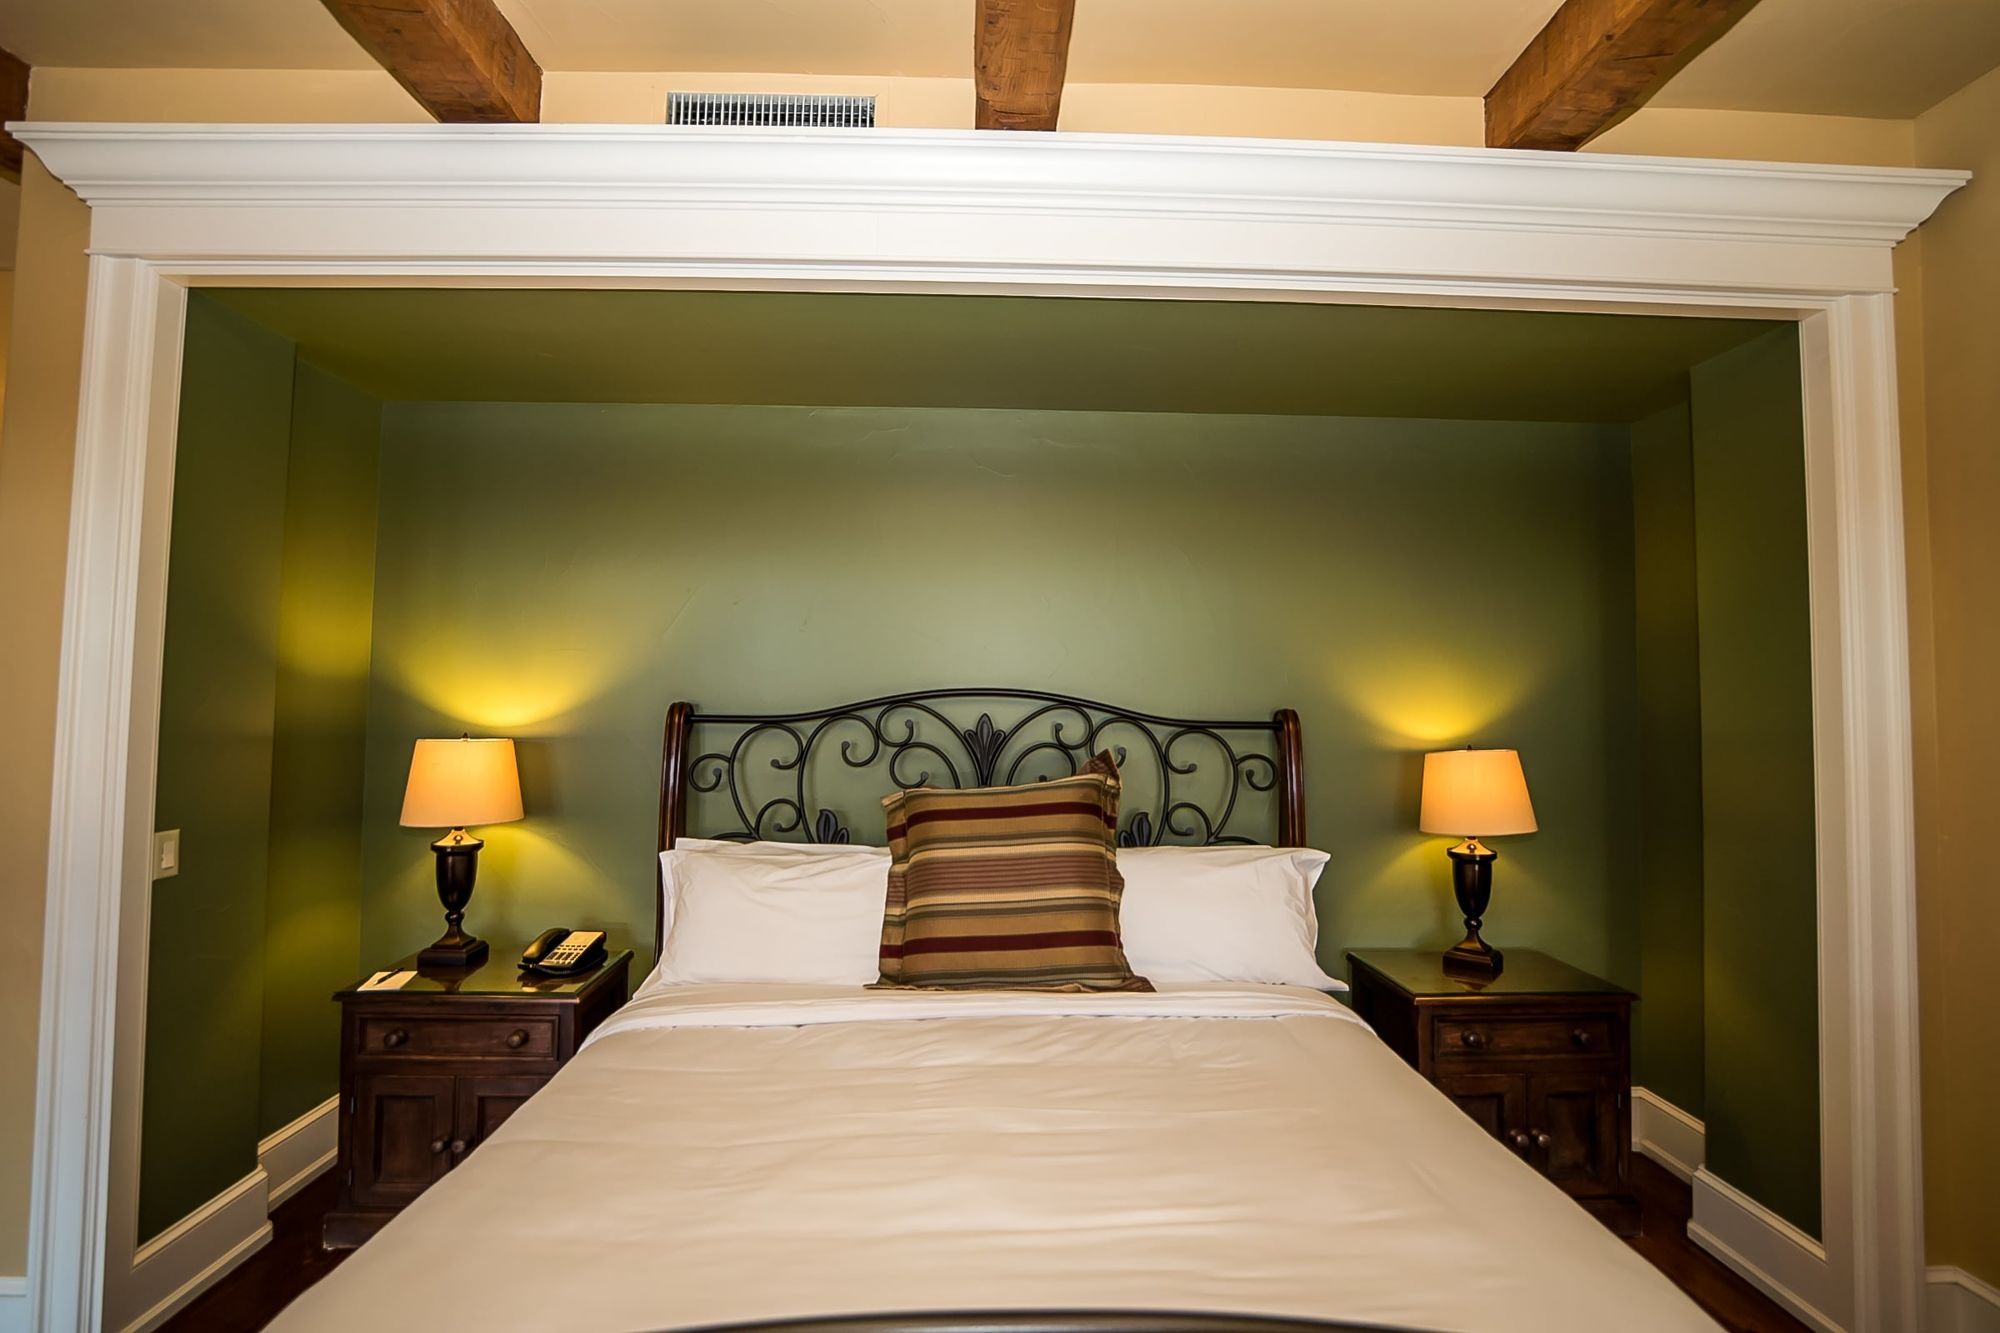 Bed with green walled niche and lights on each side